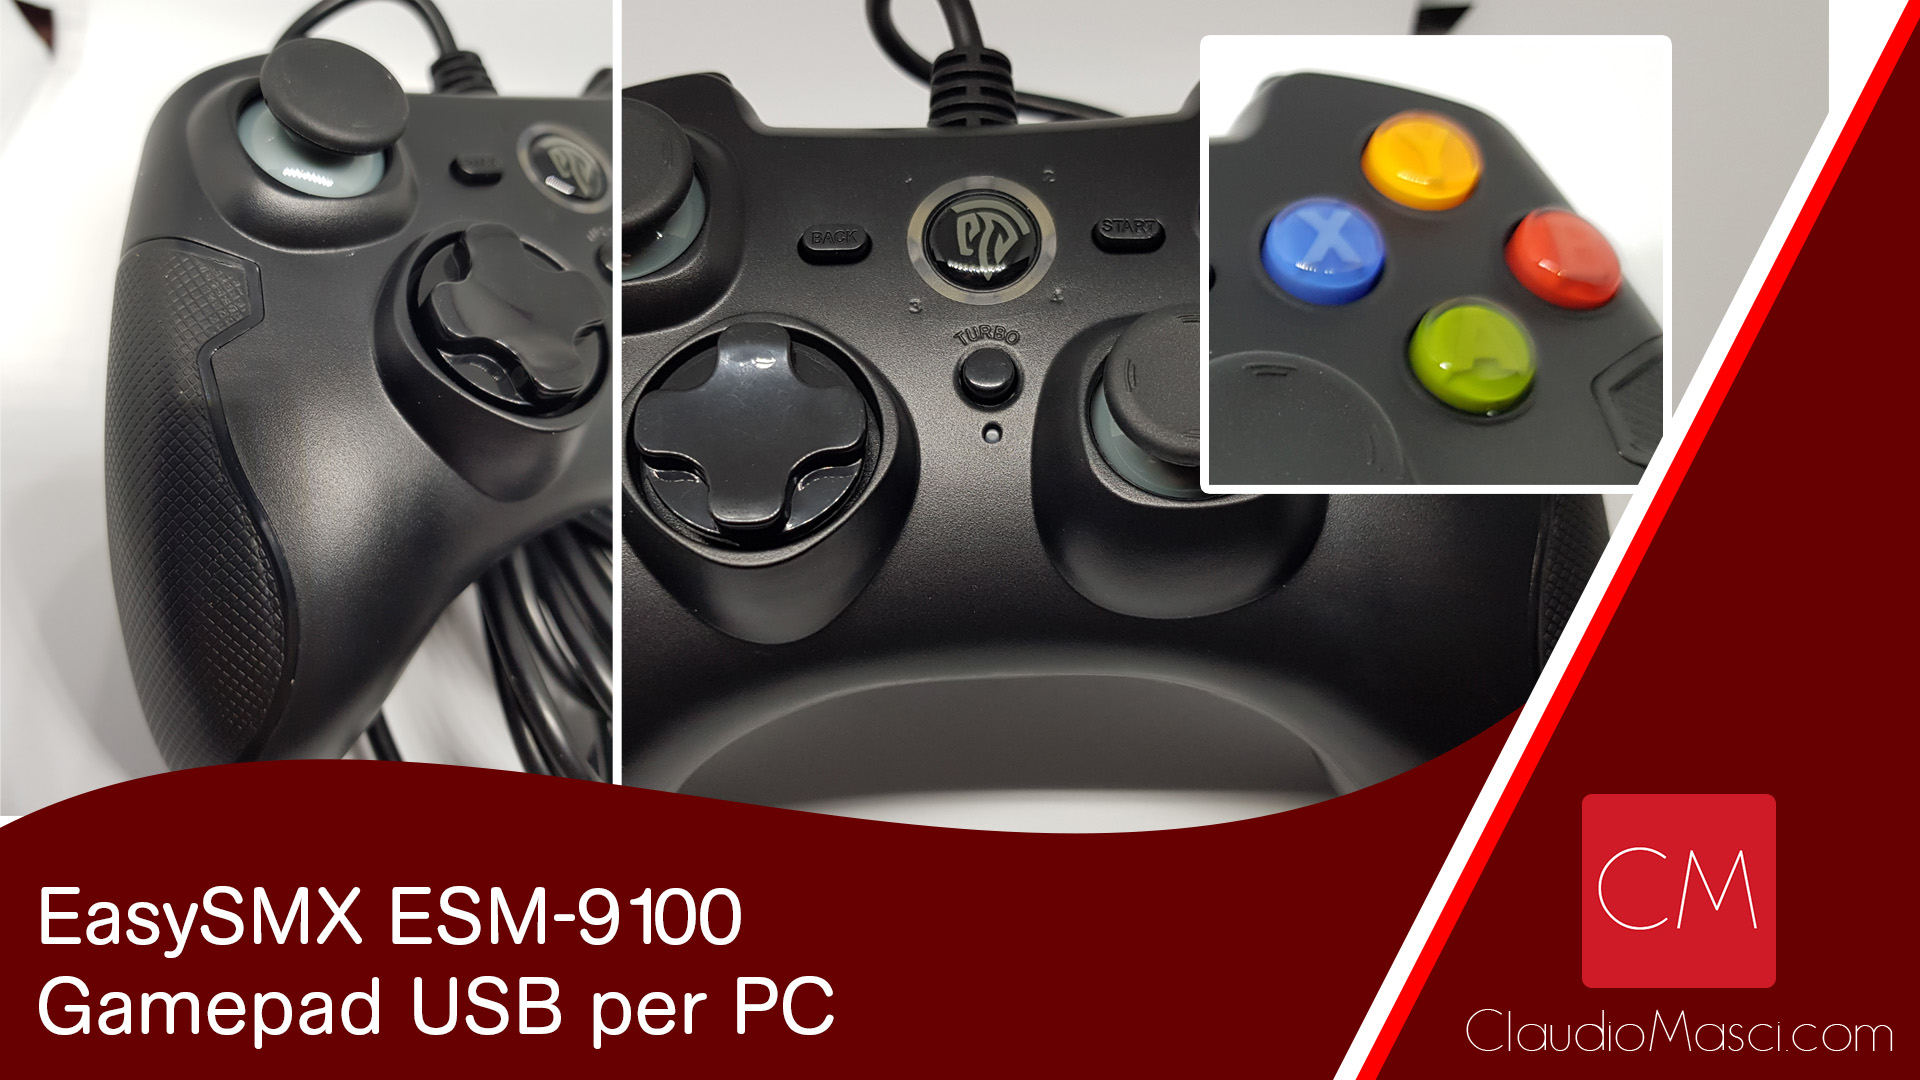 EasySMX ESM-9100 – Gamepad USB per PC